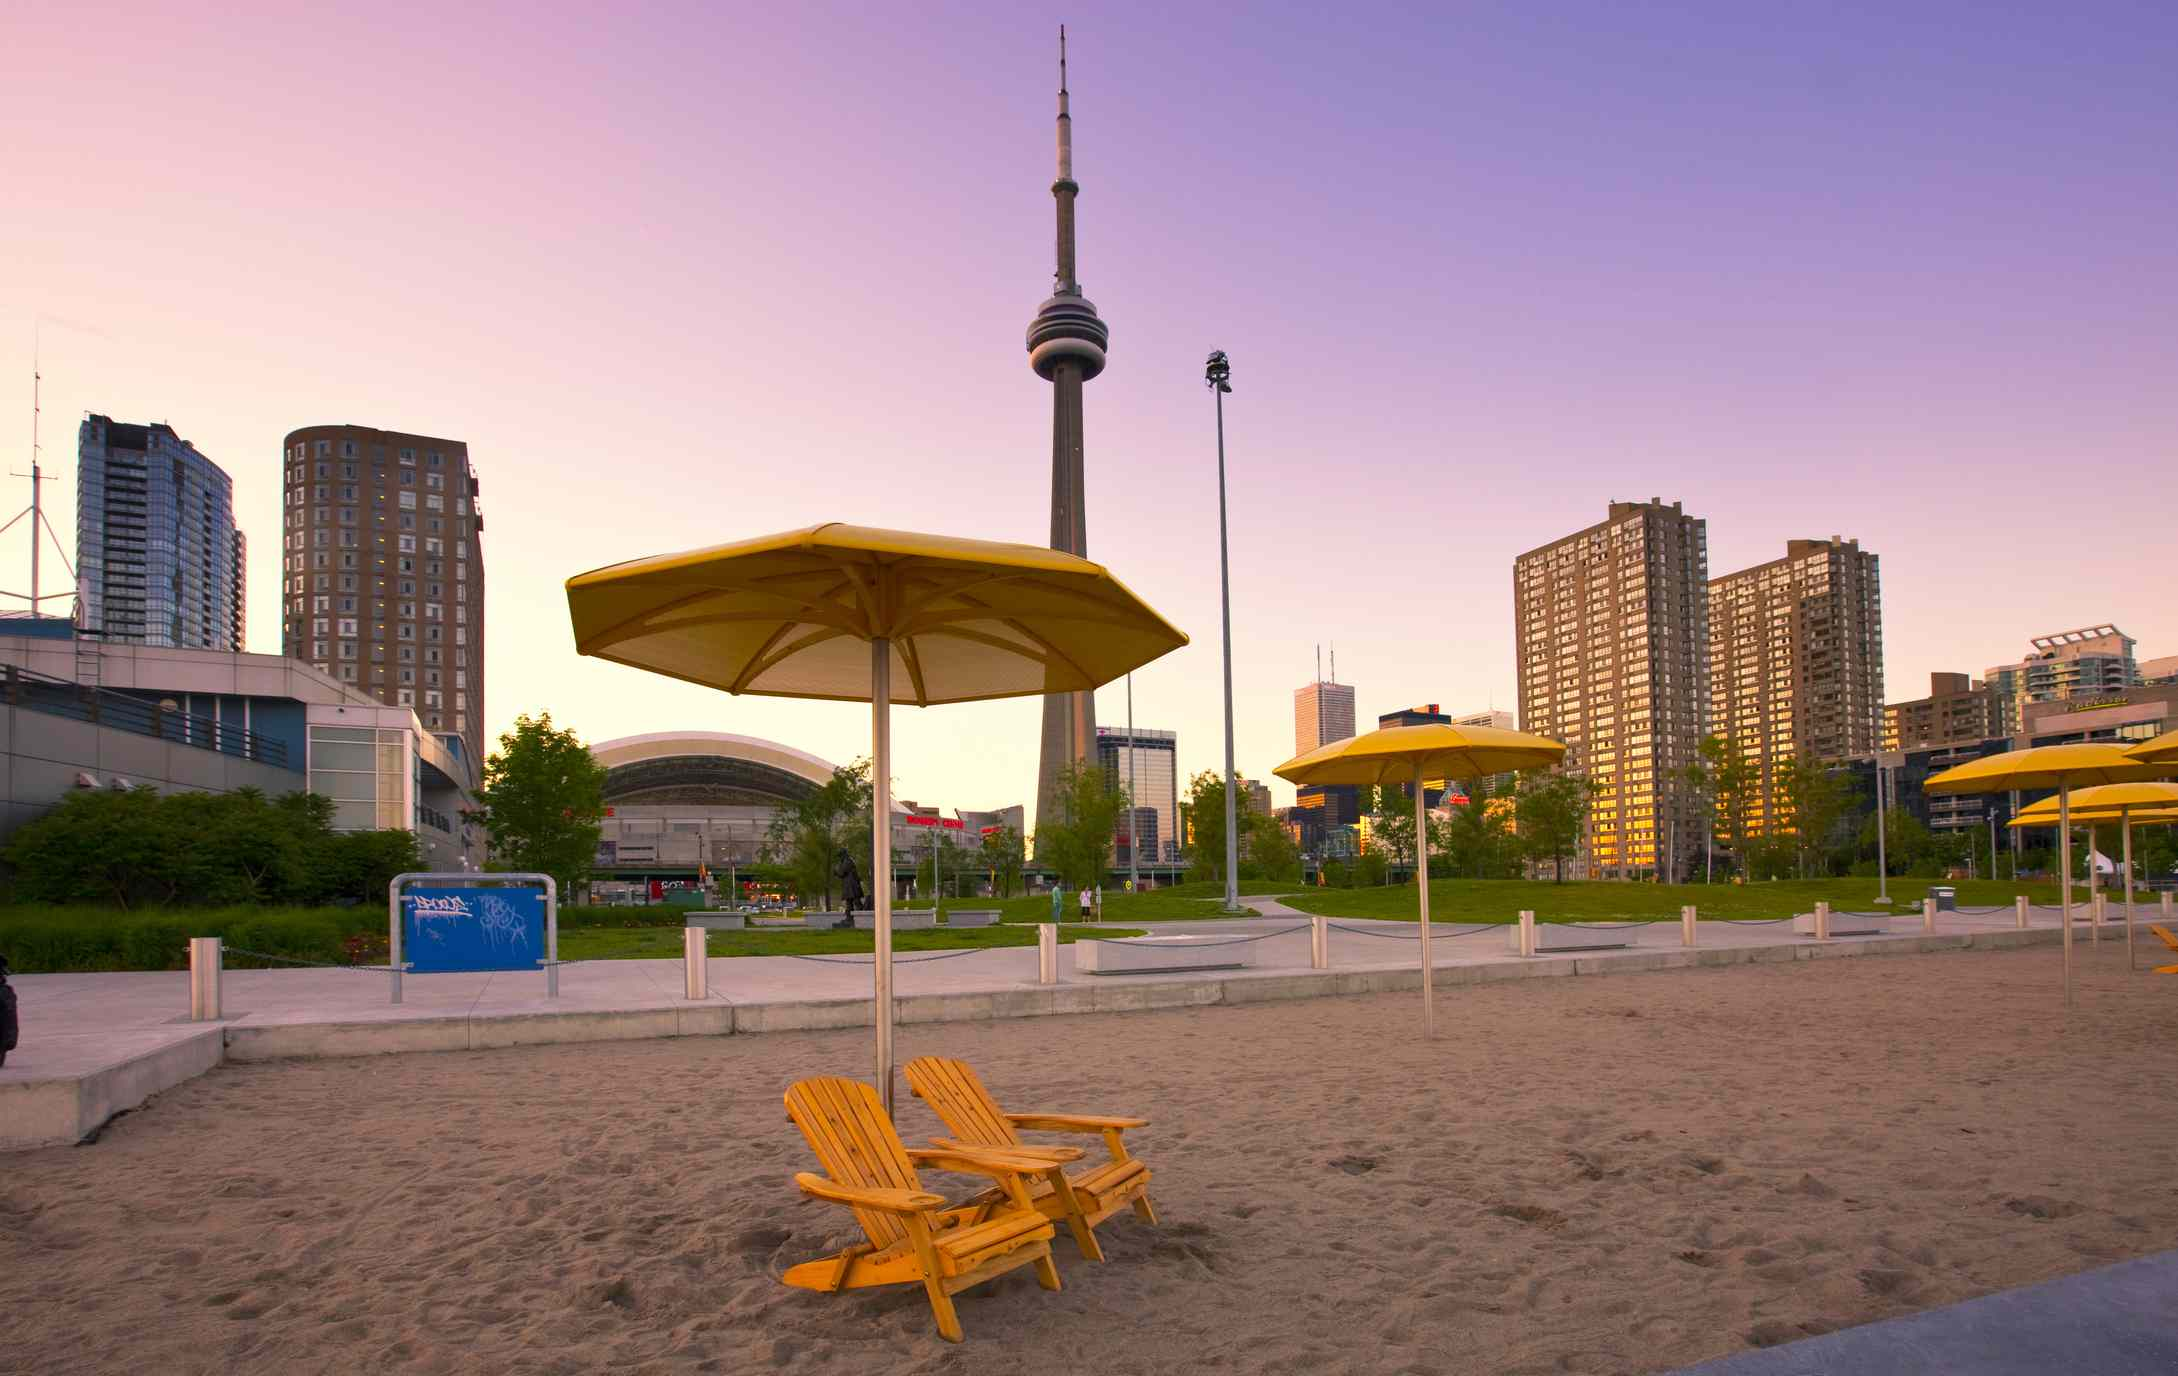 Toronto waterfront beach at dusk with CN Tower in background, Ontario, Canada.